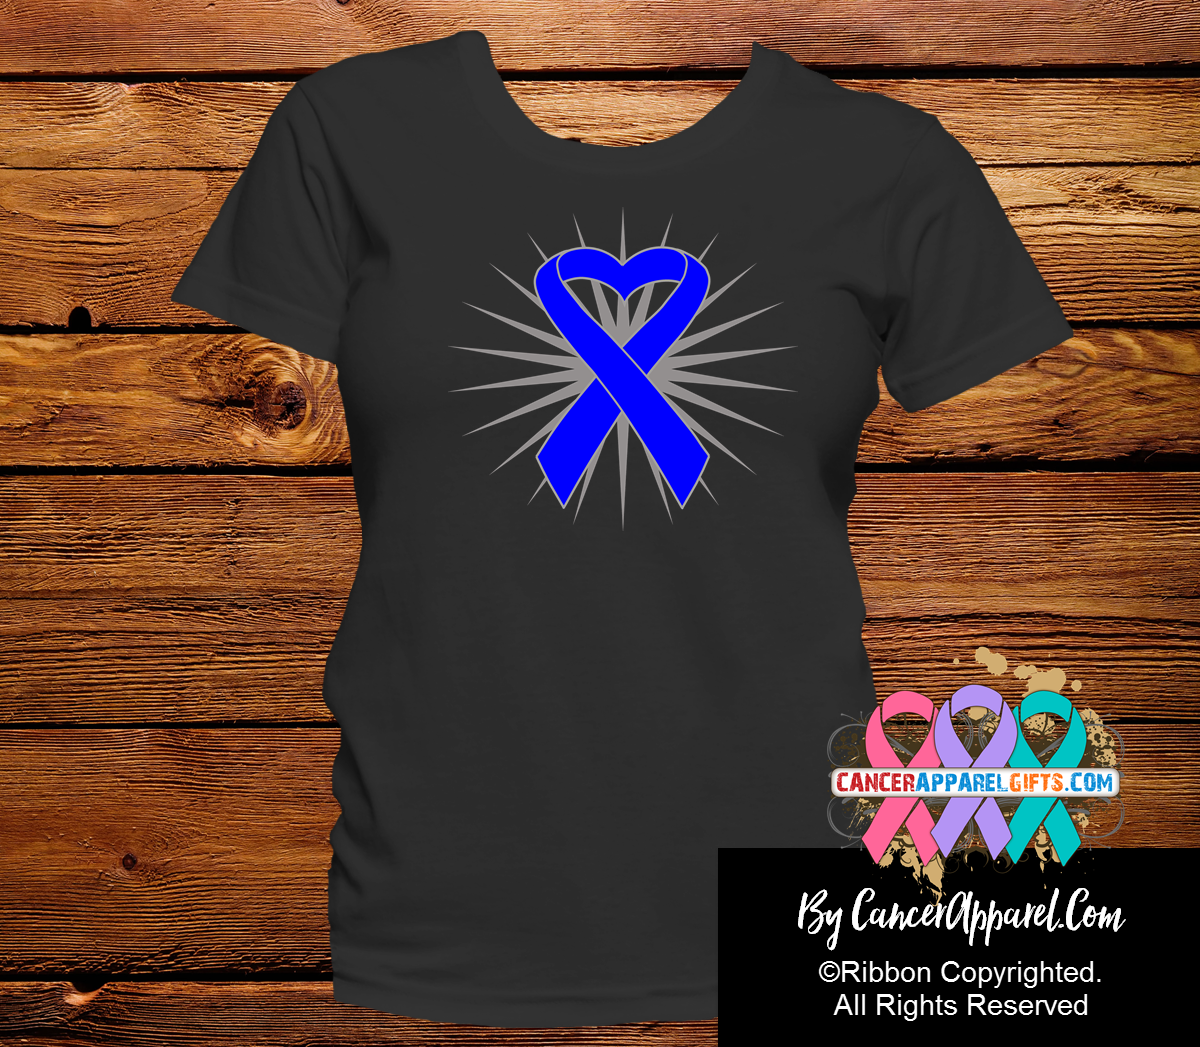 Colon Cancer Awareness Heart Ribbon Shirts Cancer Apparel Gifts At Shopify